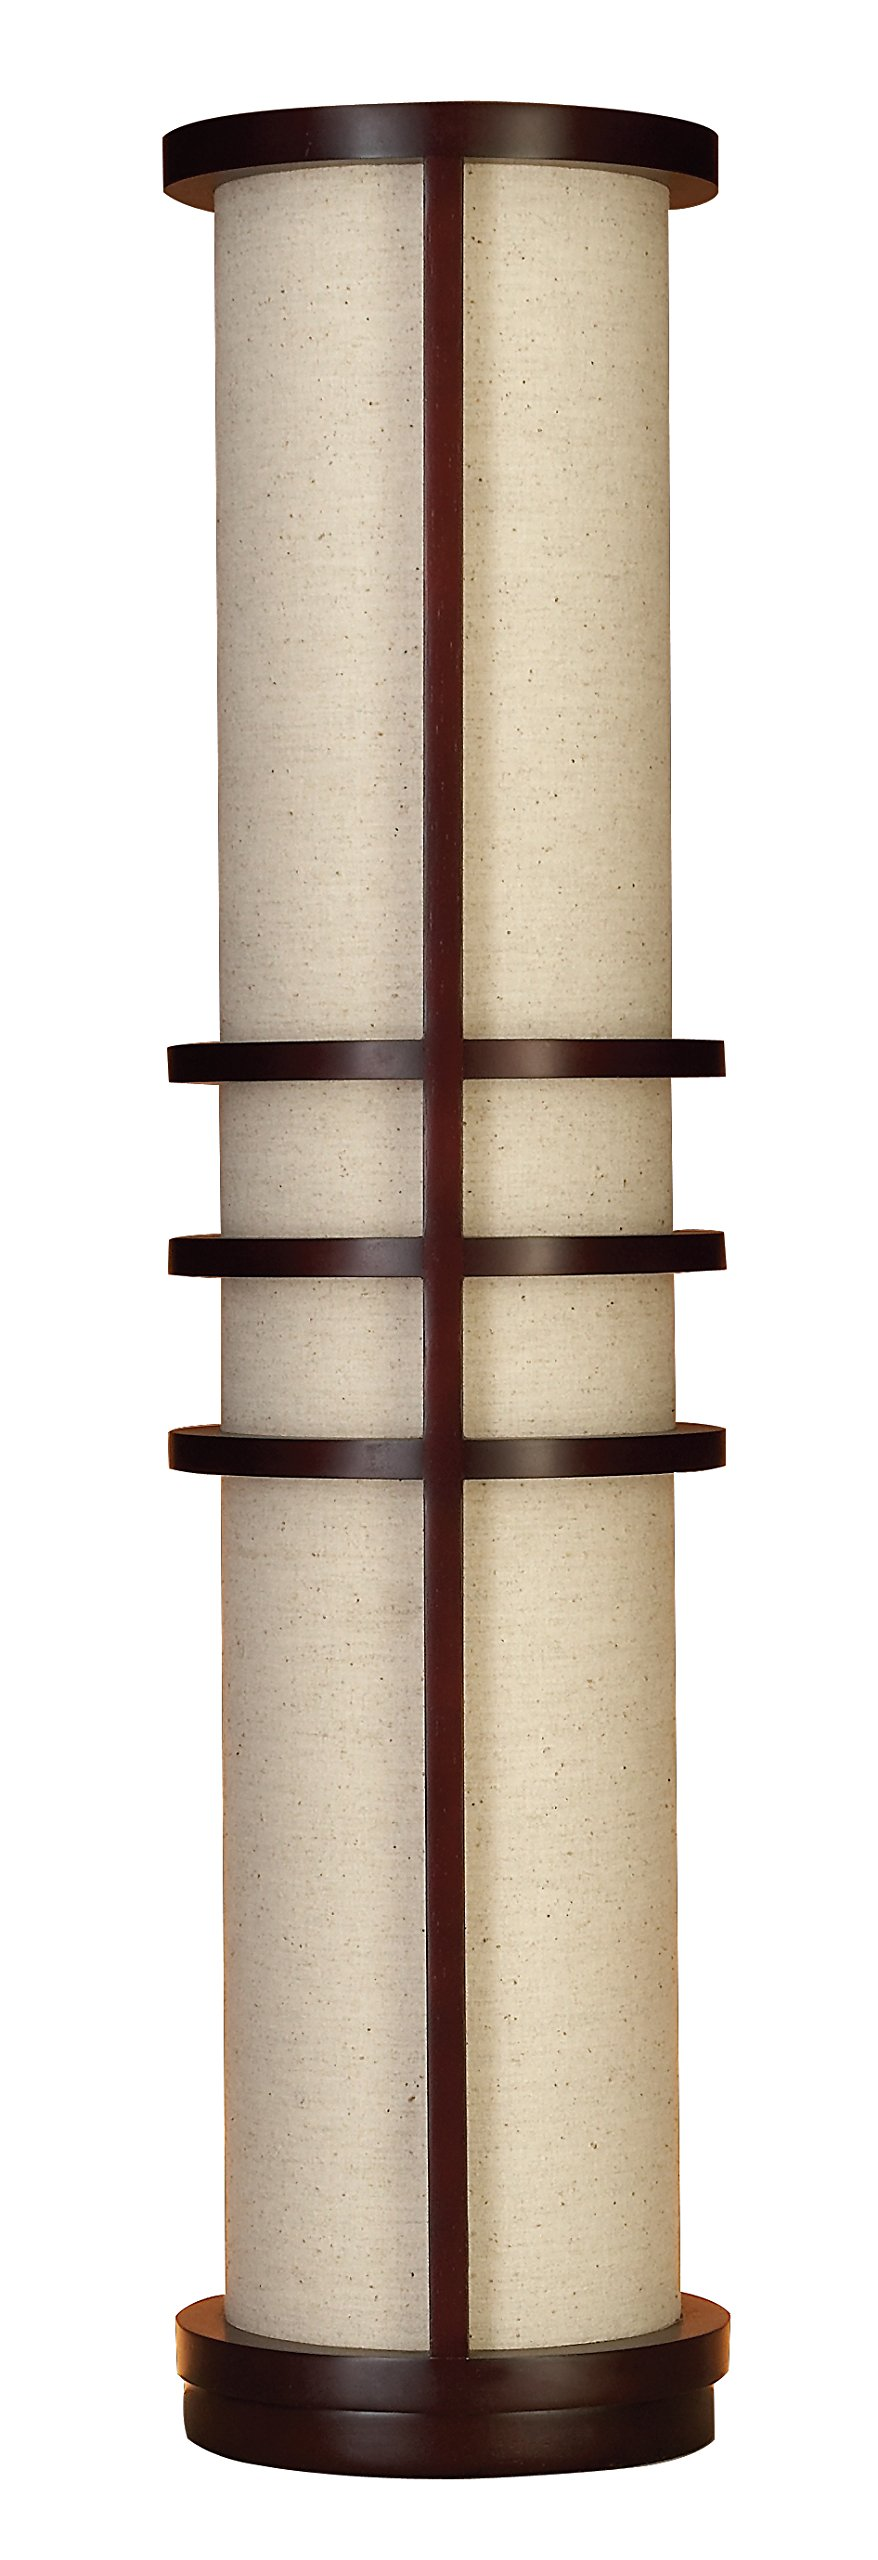 Deco 79 Wood Floor Lamp Made of Brown Wood by Deco 79 (Image #1)